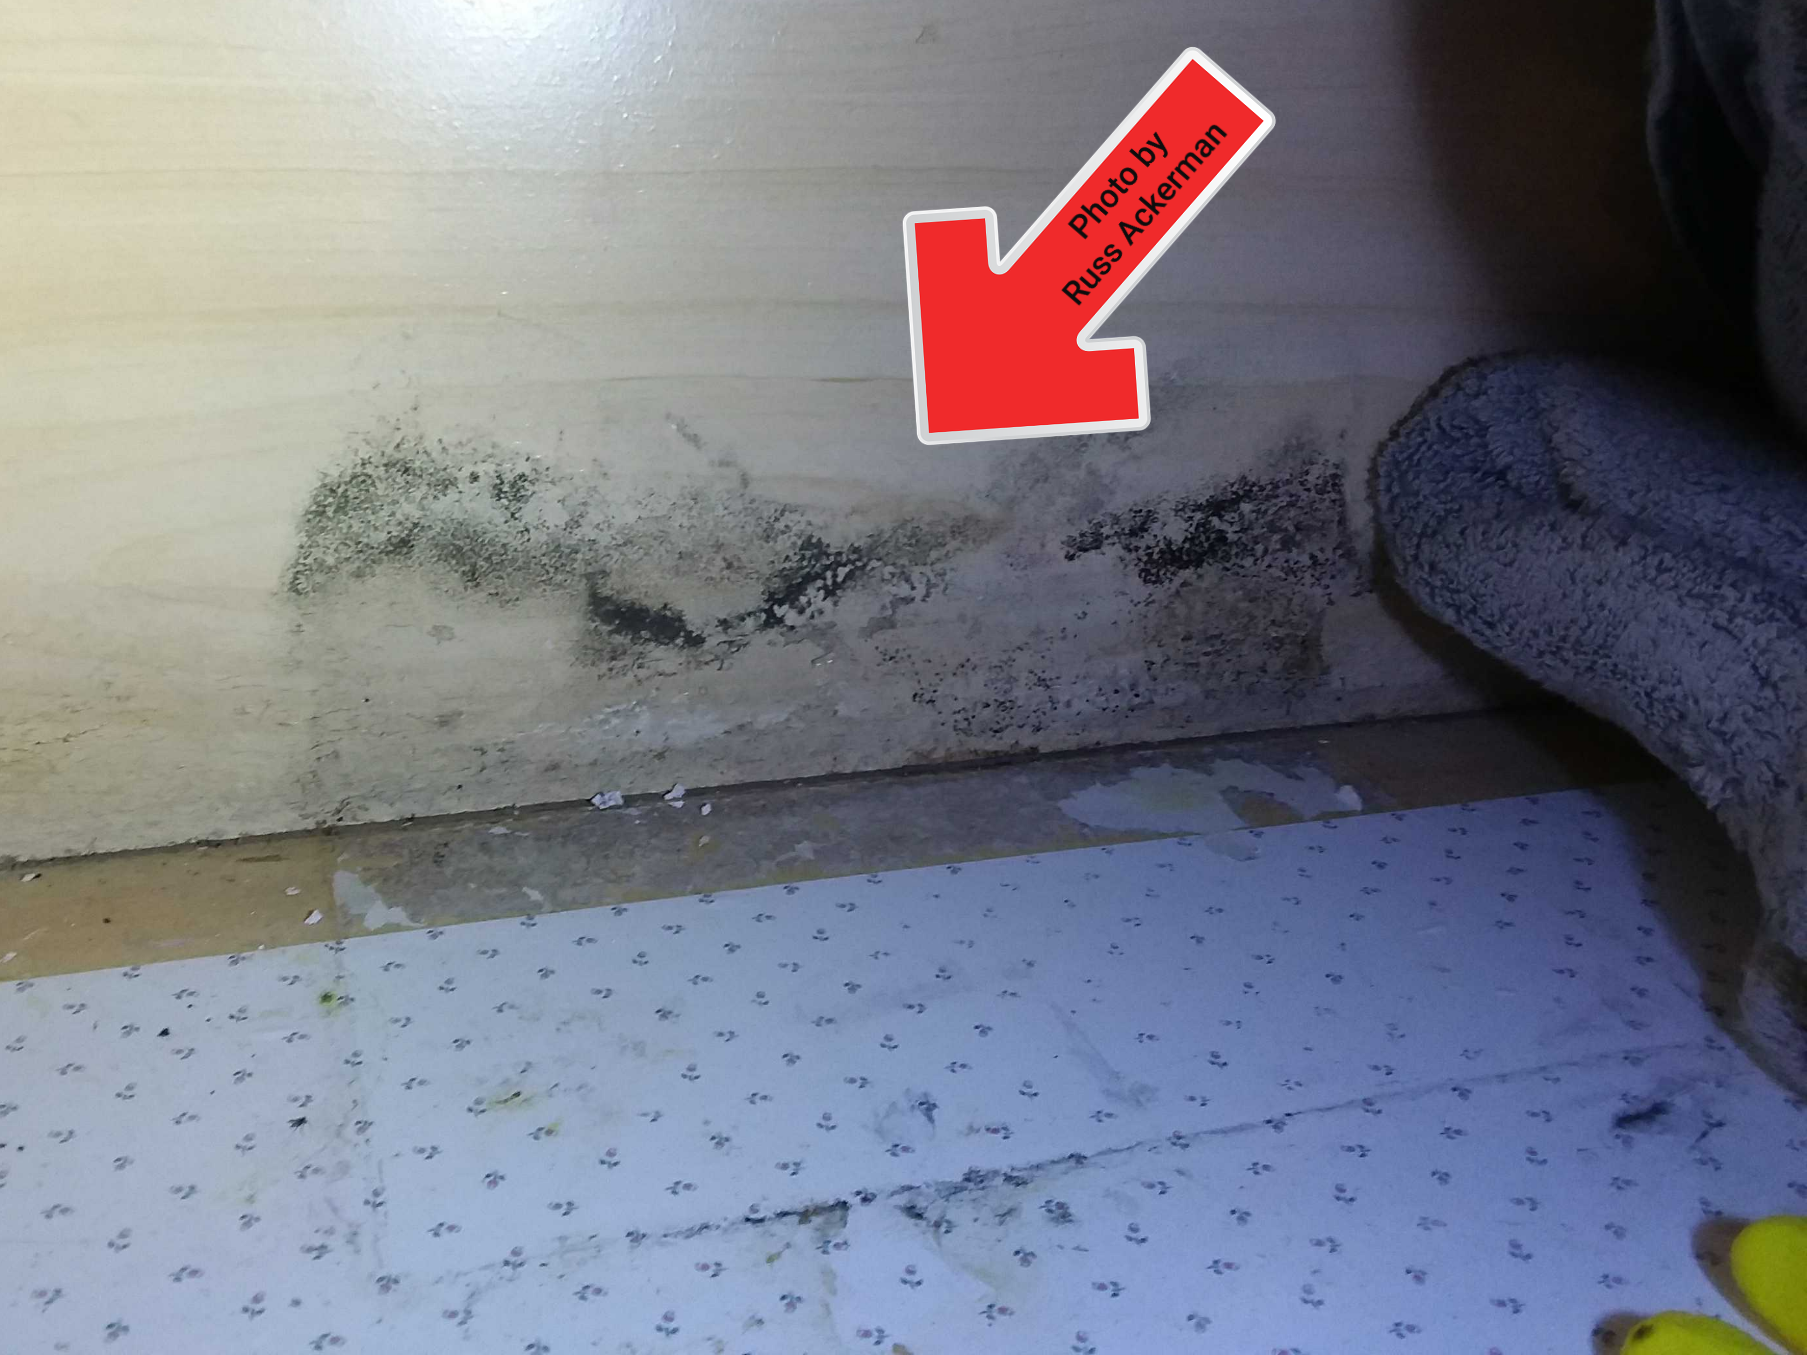 Leaking bathroom sink and mold growth. When was the last time you removed all the junk under you sinks to check for leaks?